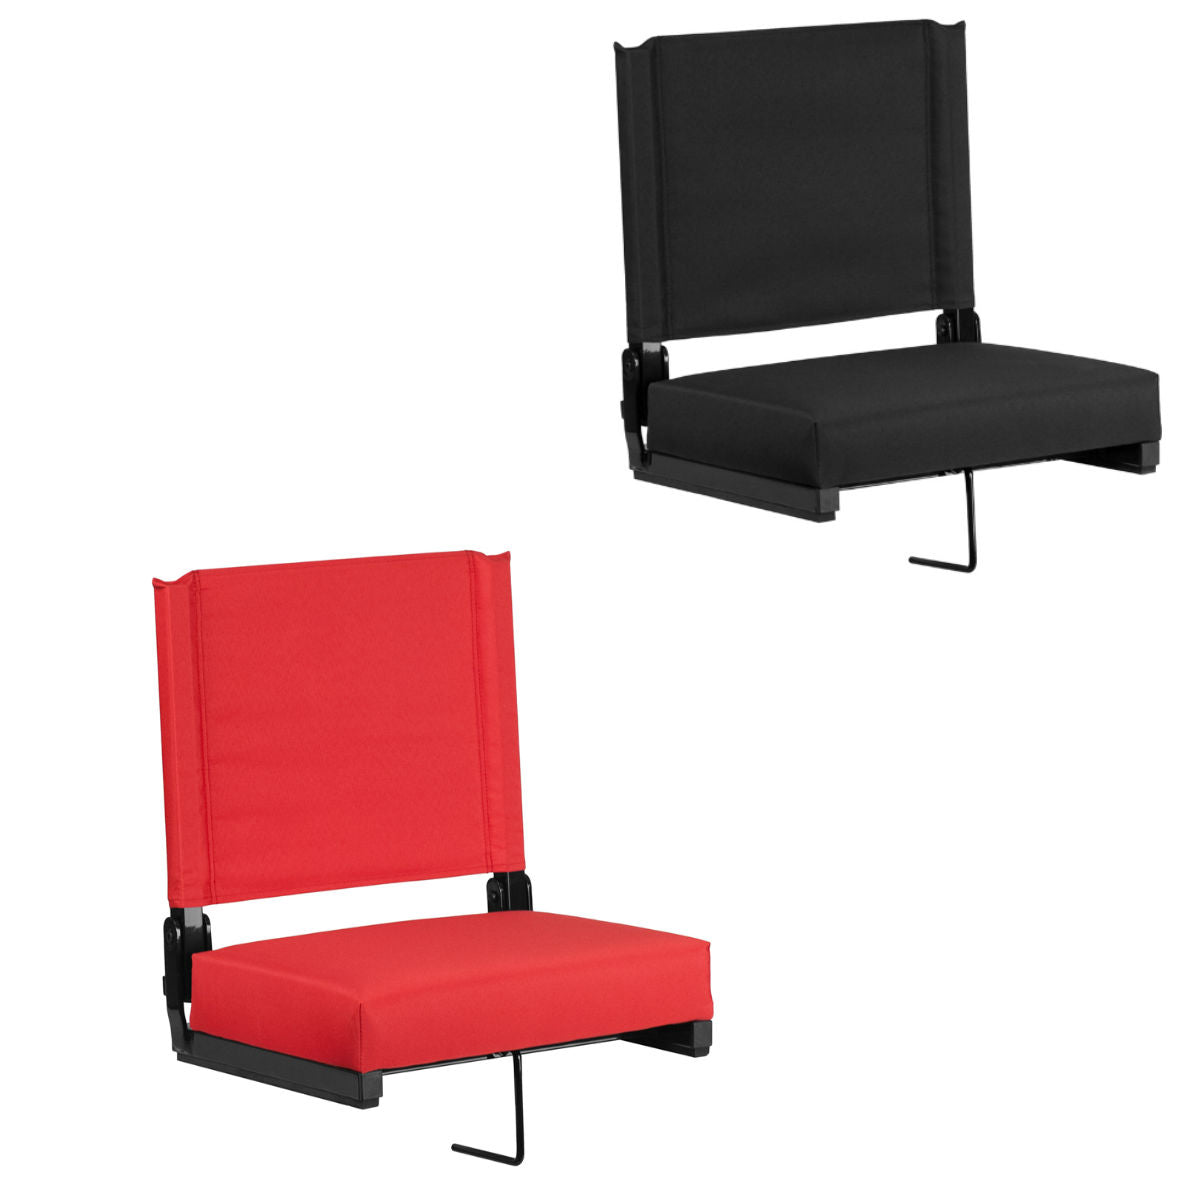 Flash Furniture Grandstand Comfort Seats by Flash with Ultra-Padded Seat in Black and Red